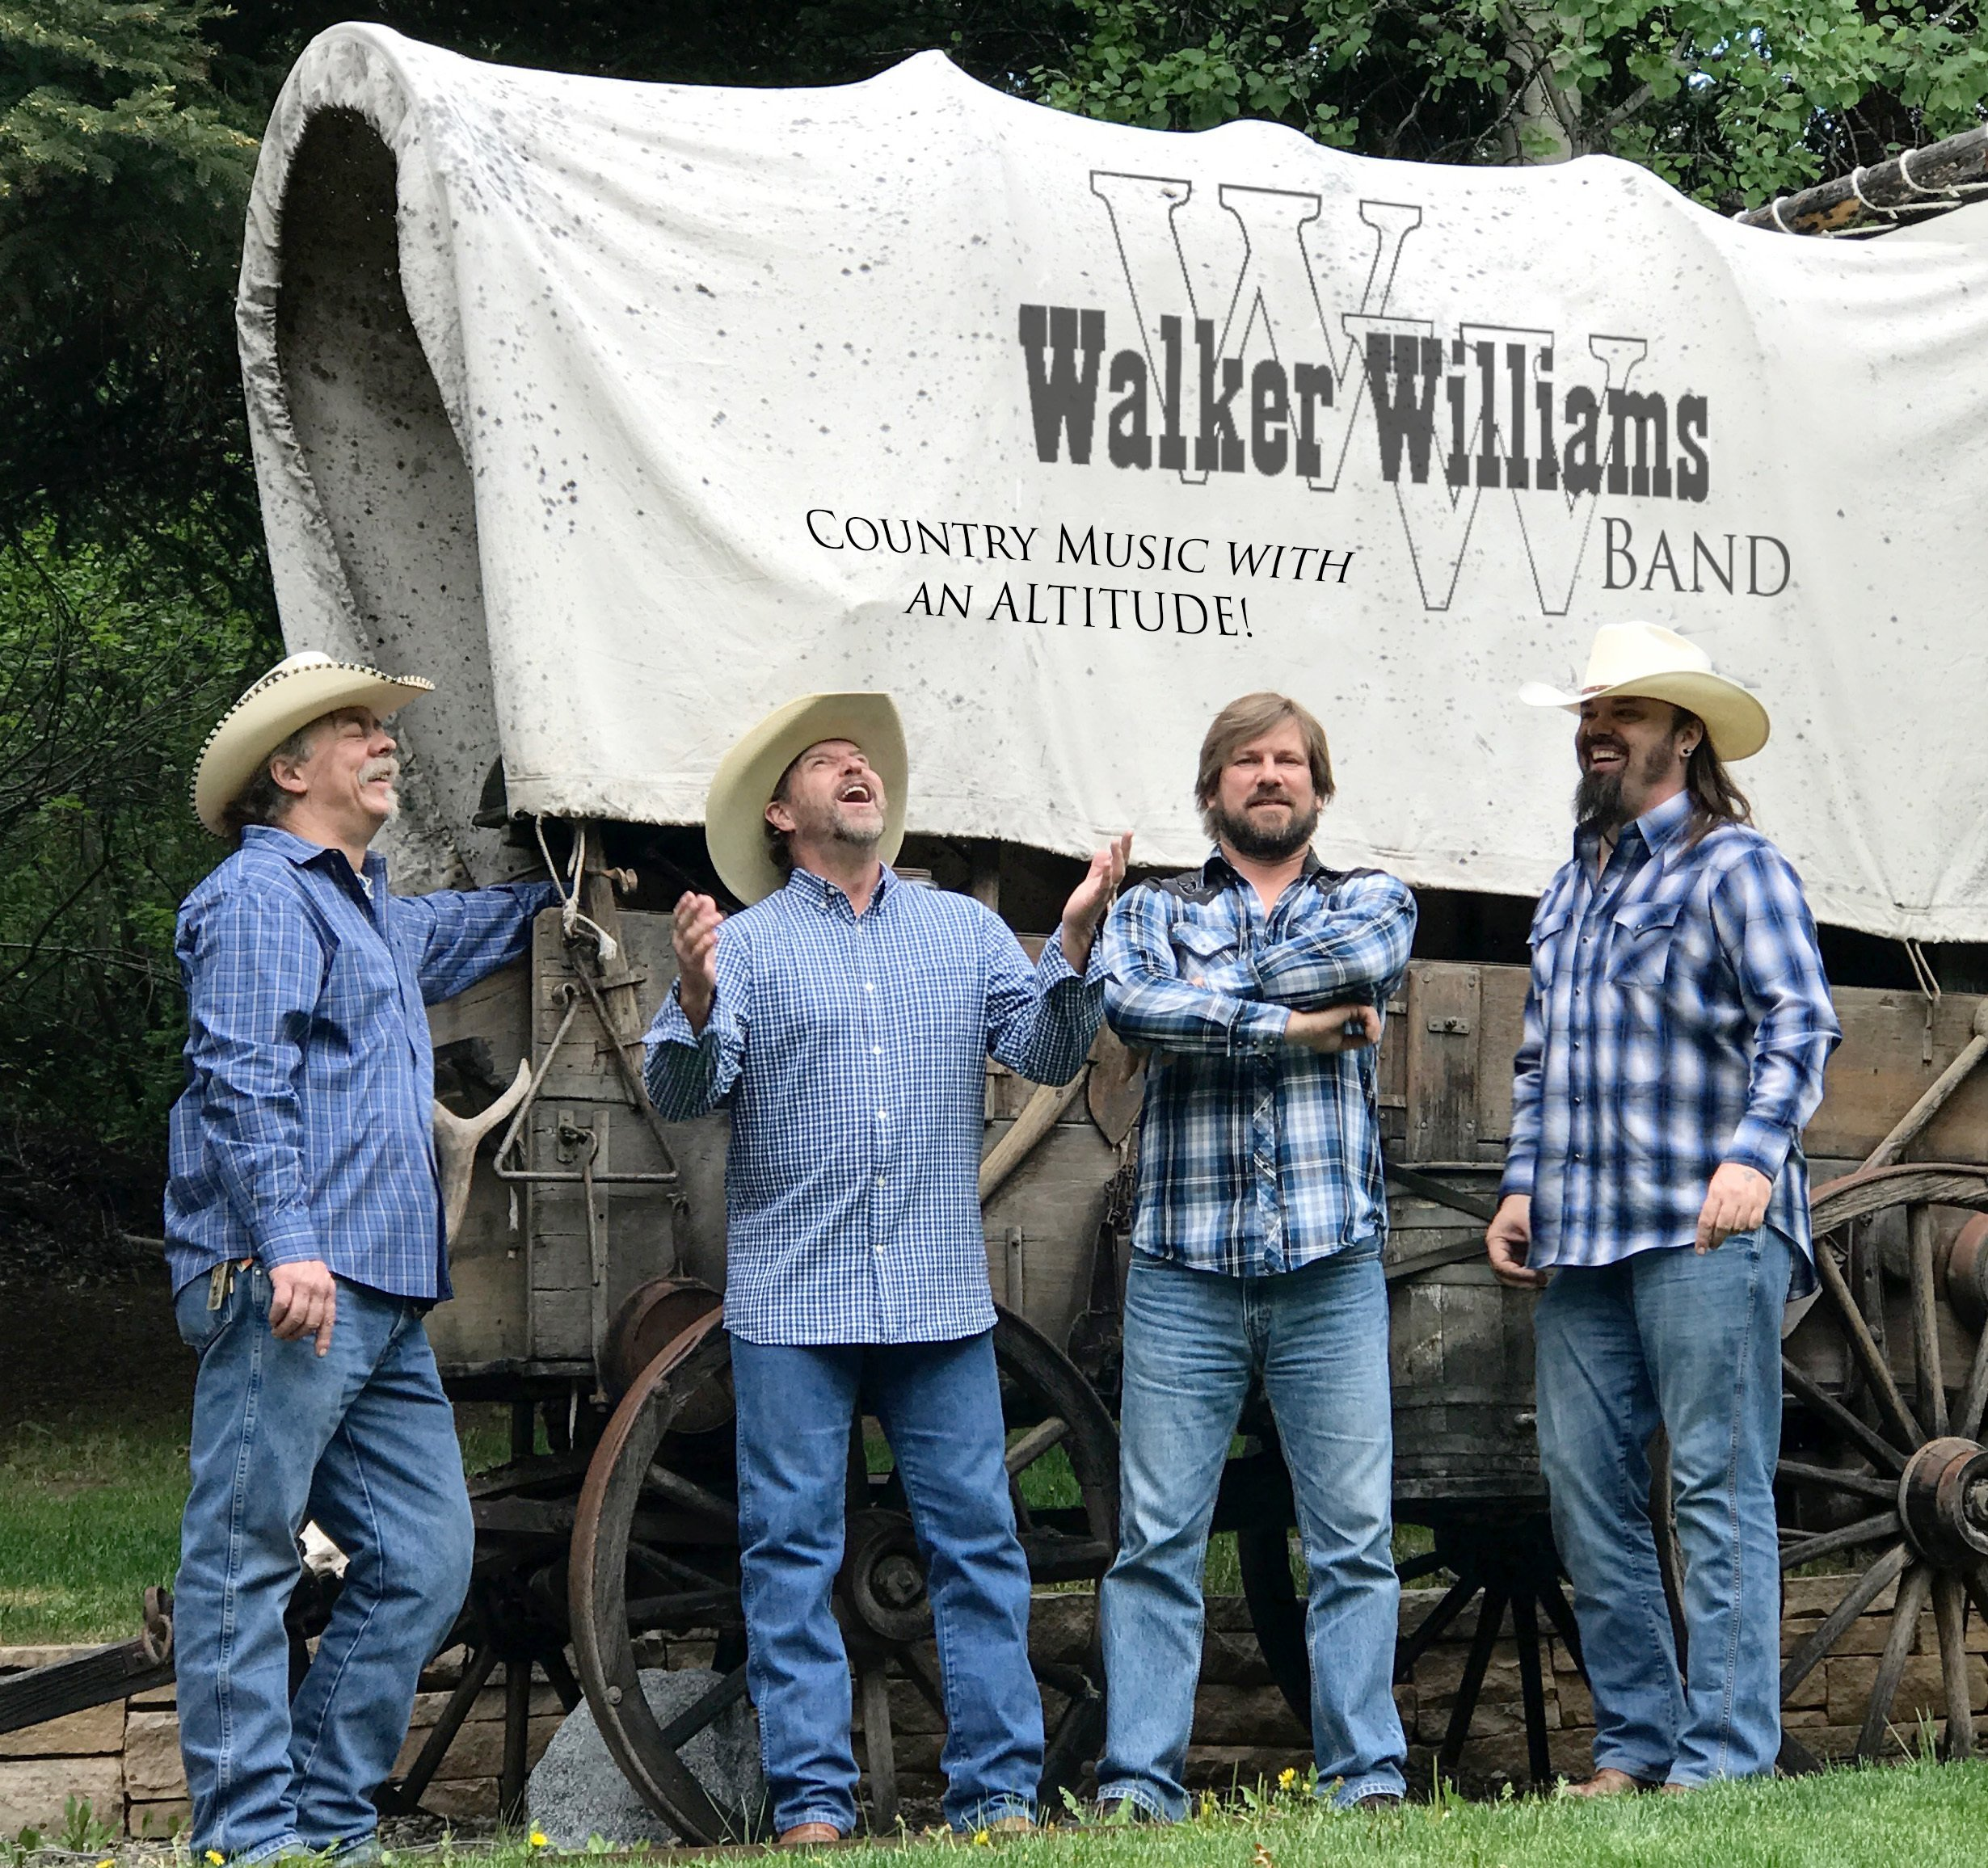 The Boys are back in town! Come get a little western with some of the best around, Walker and the gang set to hit the stage at 8:00 PM sharp